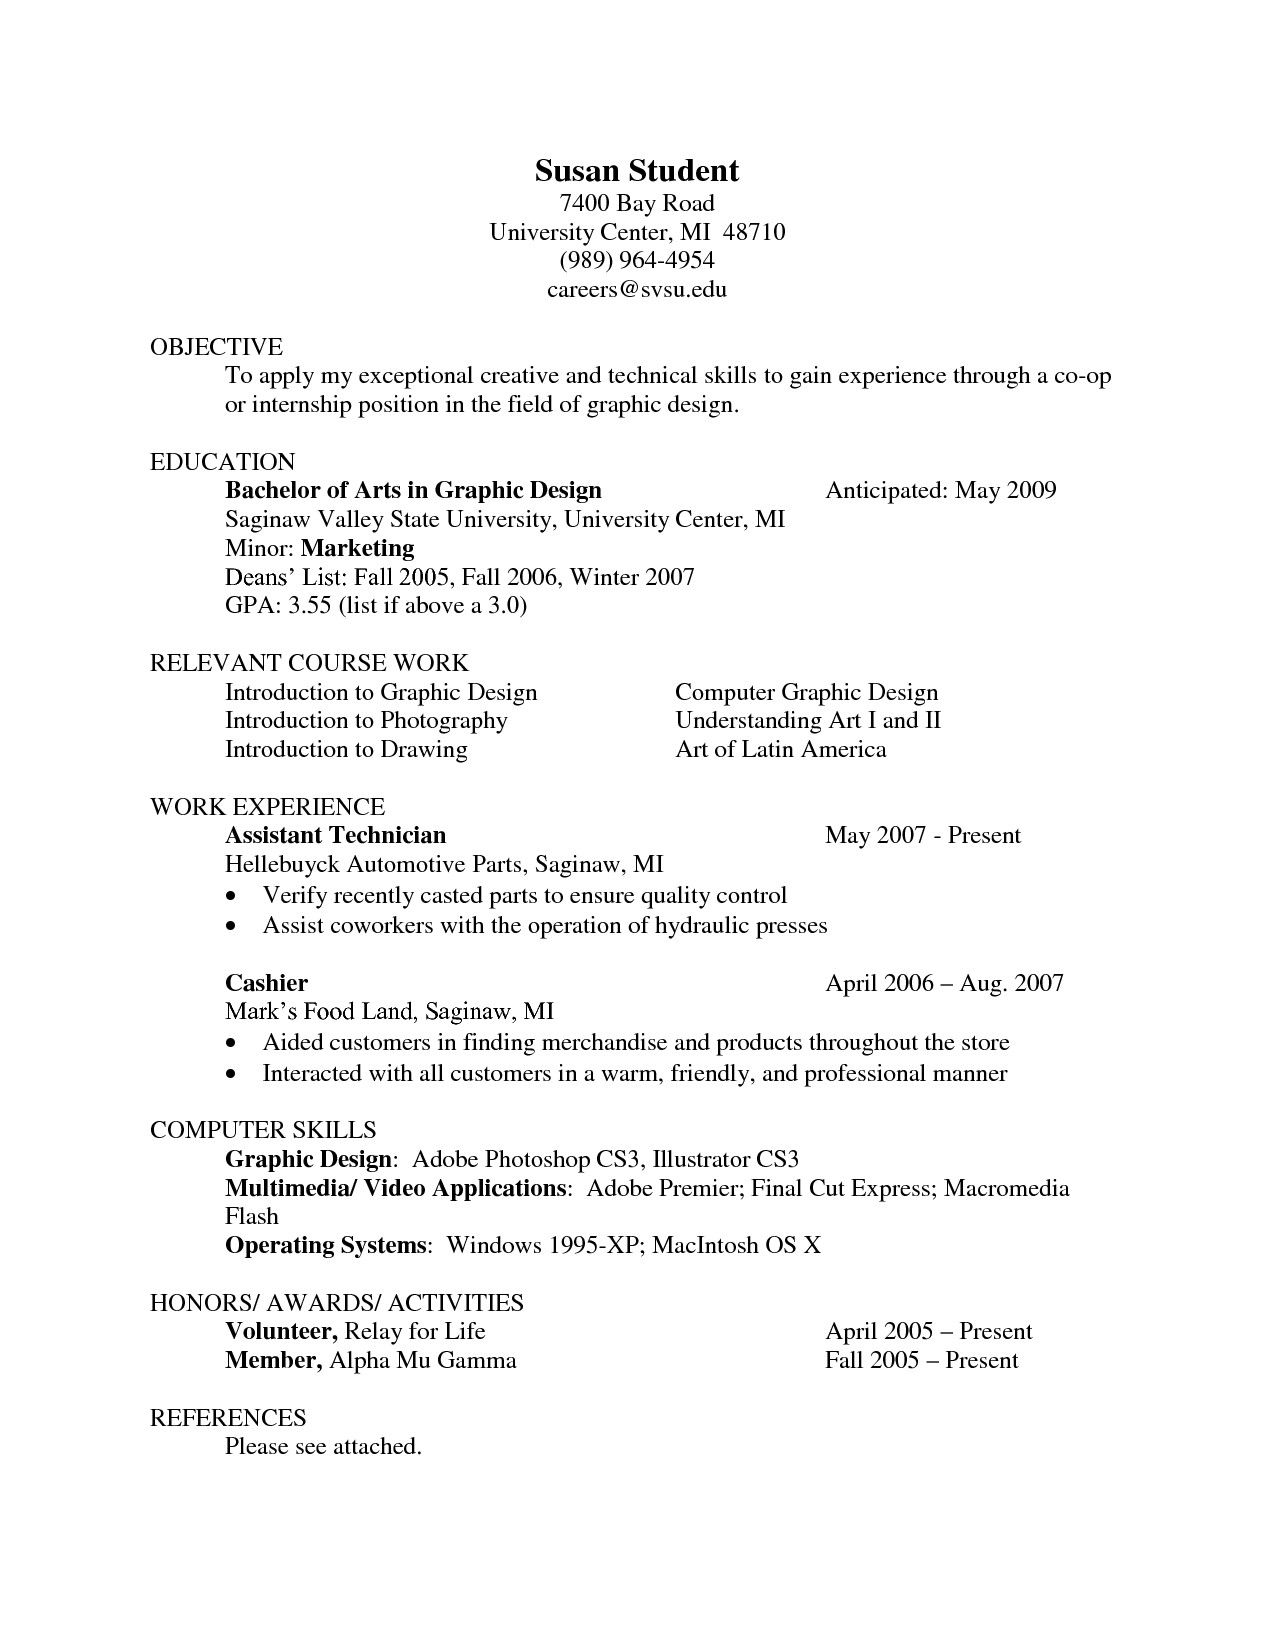 List Of Computer Skills For Resume Brilliant Resume Examples References  Pinterest  Resume Examples